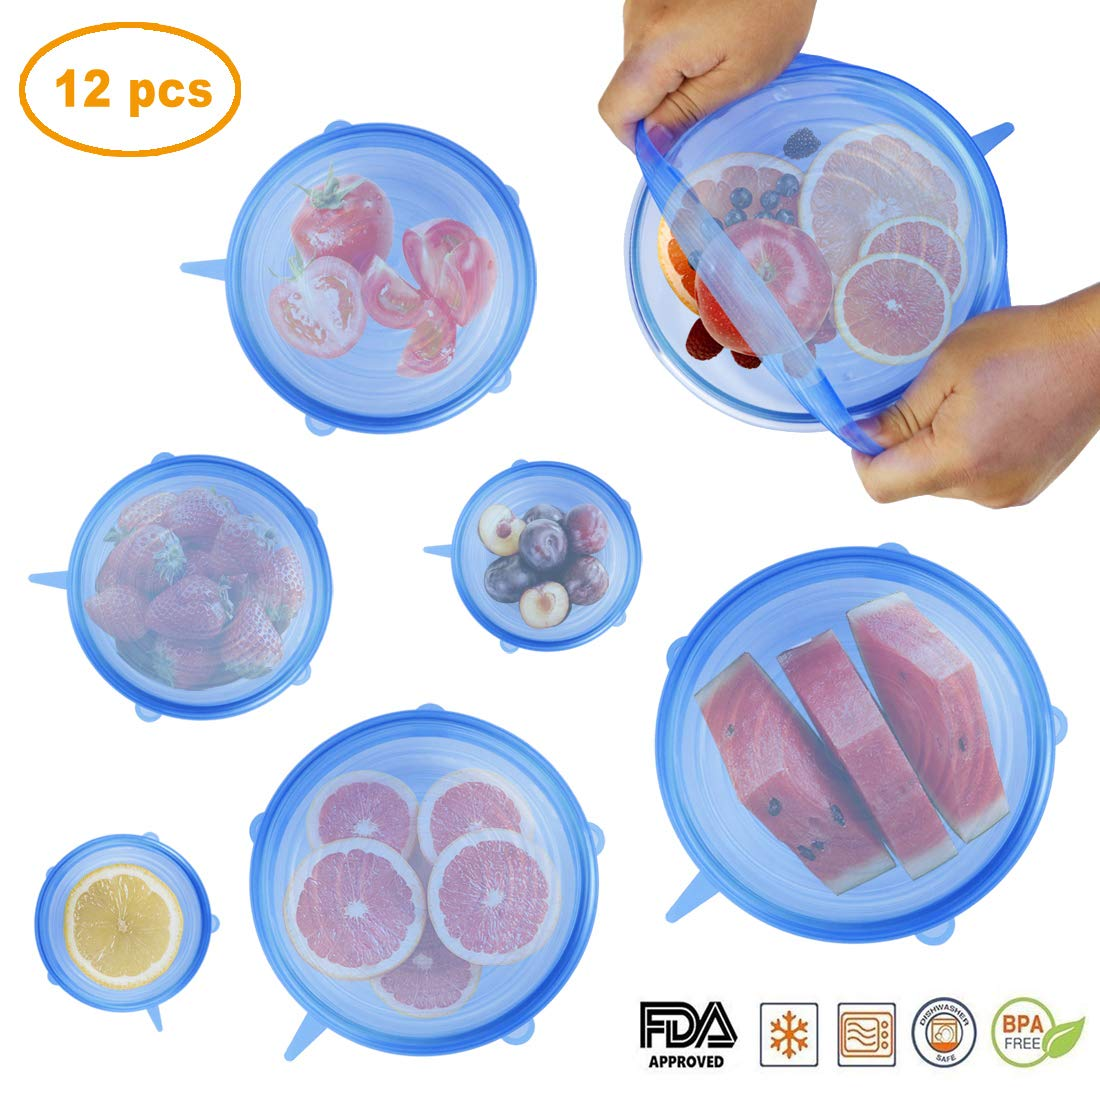 12 PCS Kitchen Silicone Stretch Lids Reusable, Idefair Airtight Food Storage Covers Various Sizes Seal Bowl Stretchy Wrap Cover Keep Food Fresh for Containers, Cups, Plates, Microwave, Dishwasher Safe